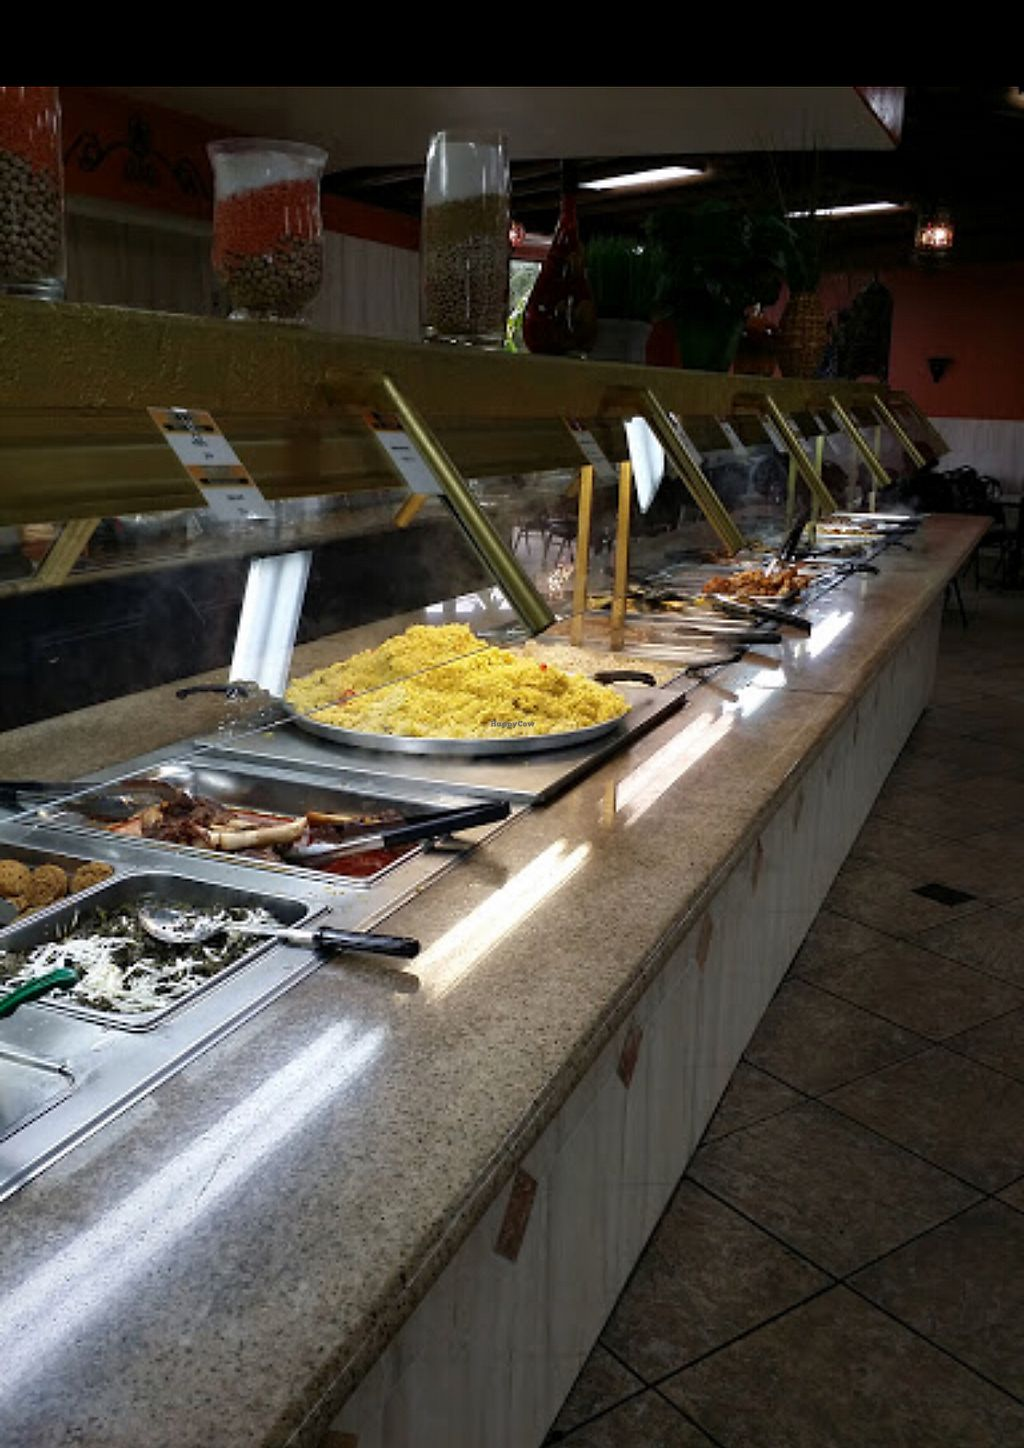 """Photo of Dimassi's Mediterranean Buffet  by <a href=""""/members/profile/ashlinmichelle7"""">ashlinmichelle7</a> <br/>Buffet line <br/> April 15, 2018  - <a href='/contact/abuse/image/30476/385972'>Report</a>"""